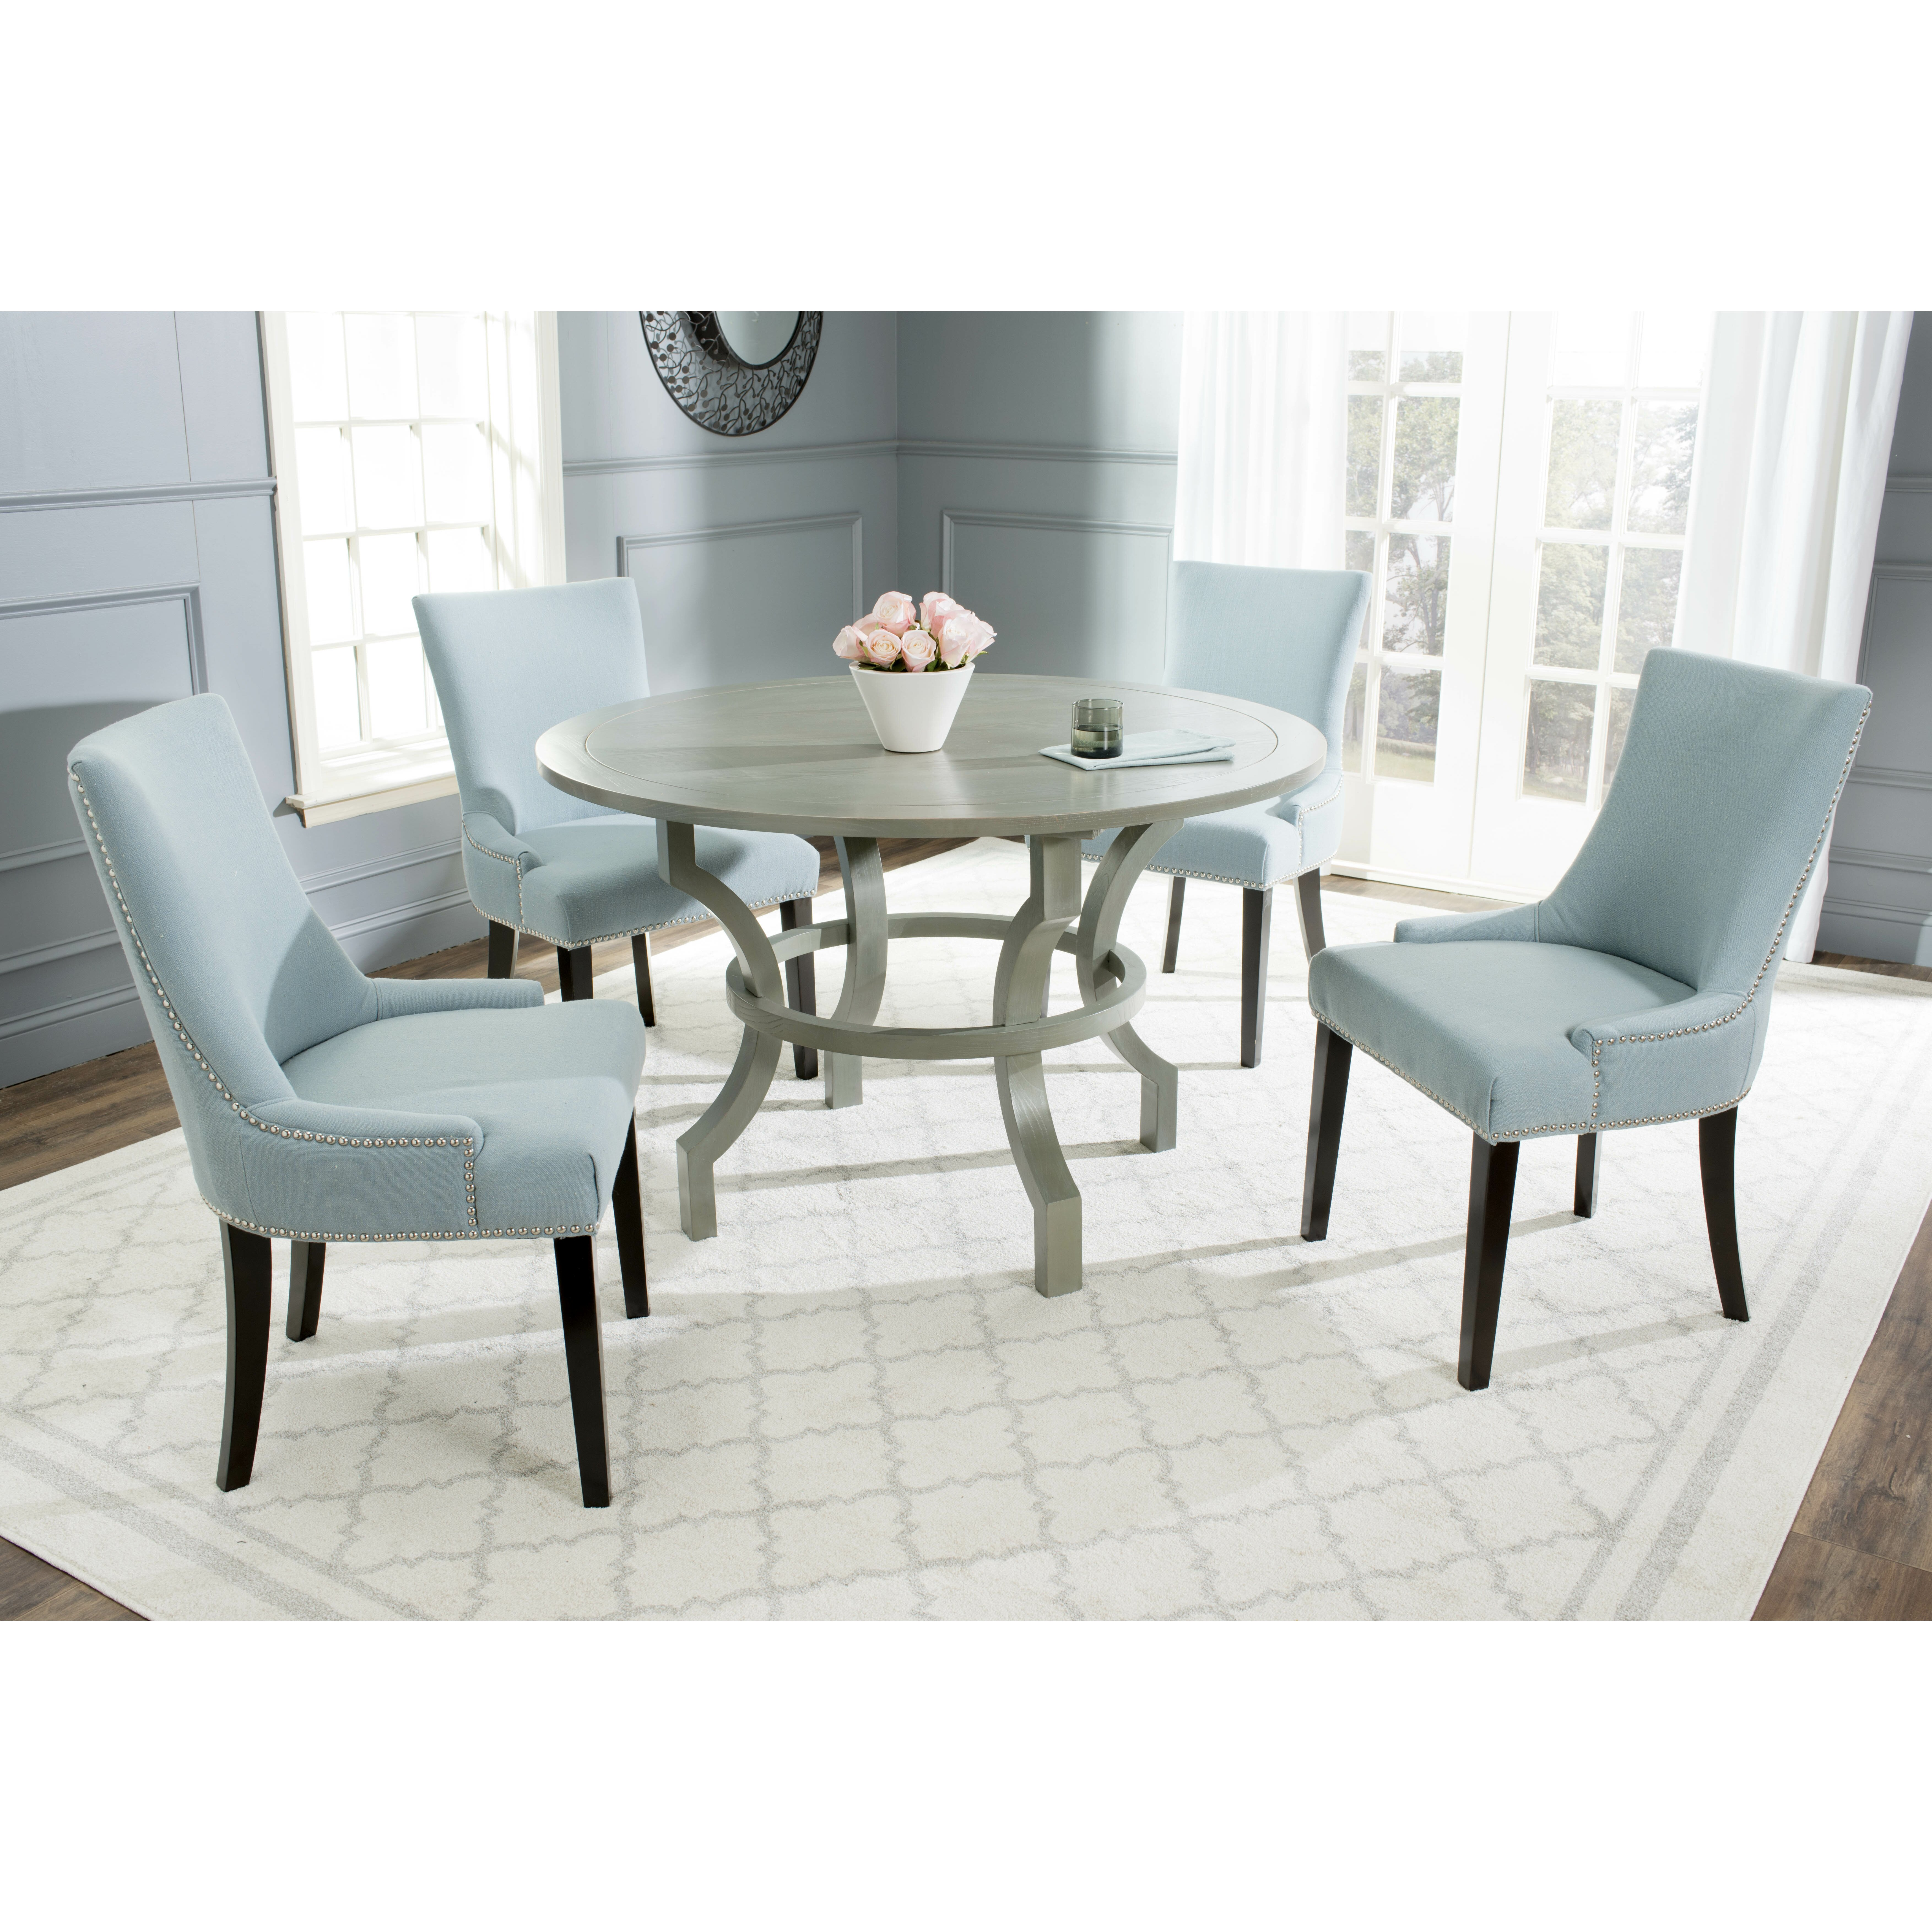 Beachcrest home deerfield dining table reviews wayfair for Wayfair furniture dining tables